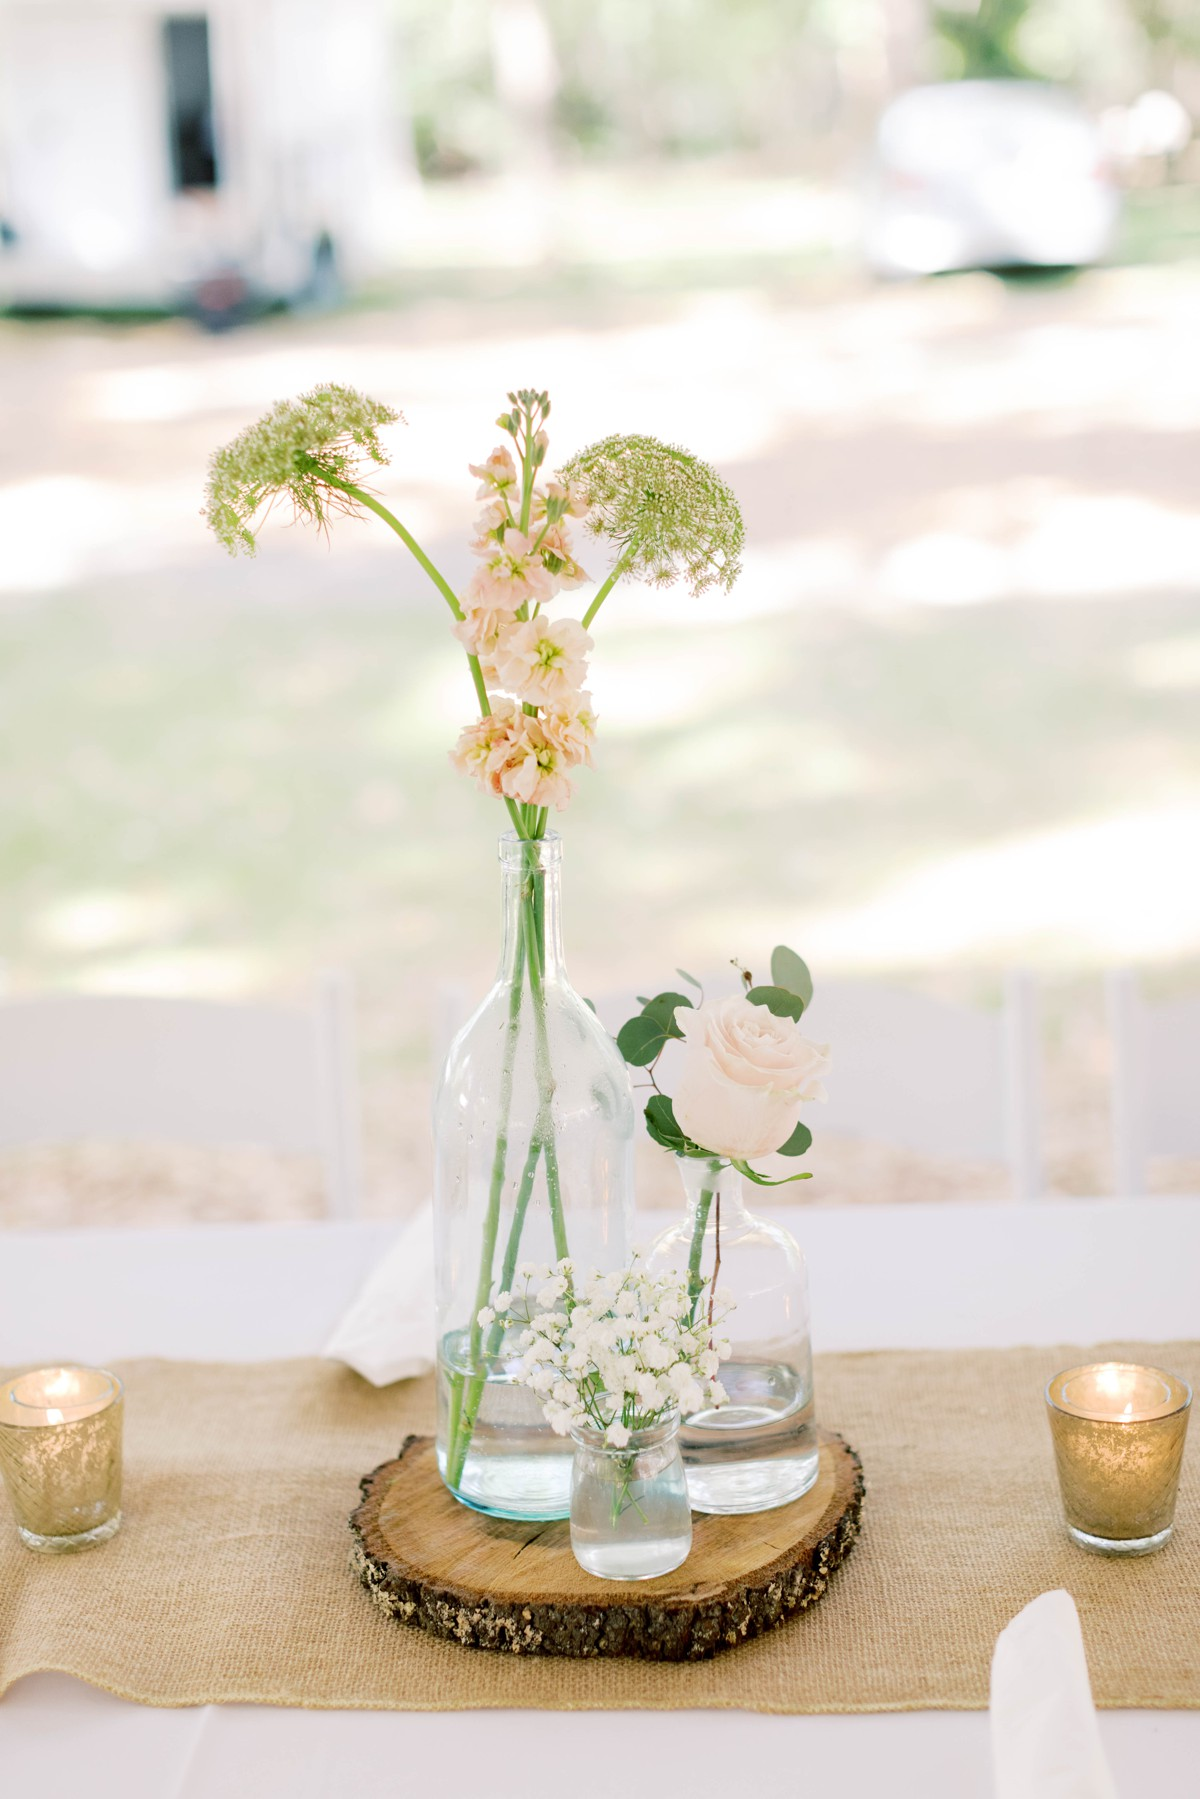 Bressler-Wedding-Preview-Tuckers-Farmhouse-Jacksonville-Wedding-Photographer-Chantell-Rae061.jpg